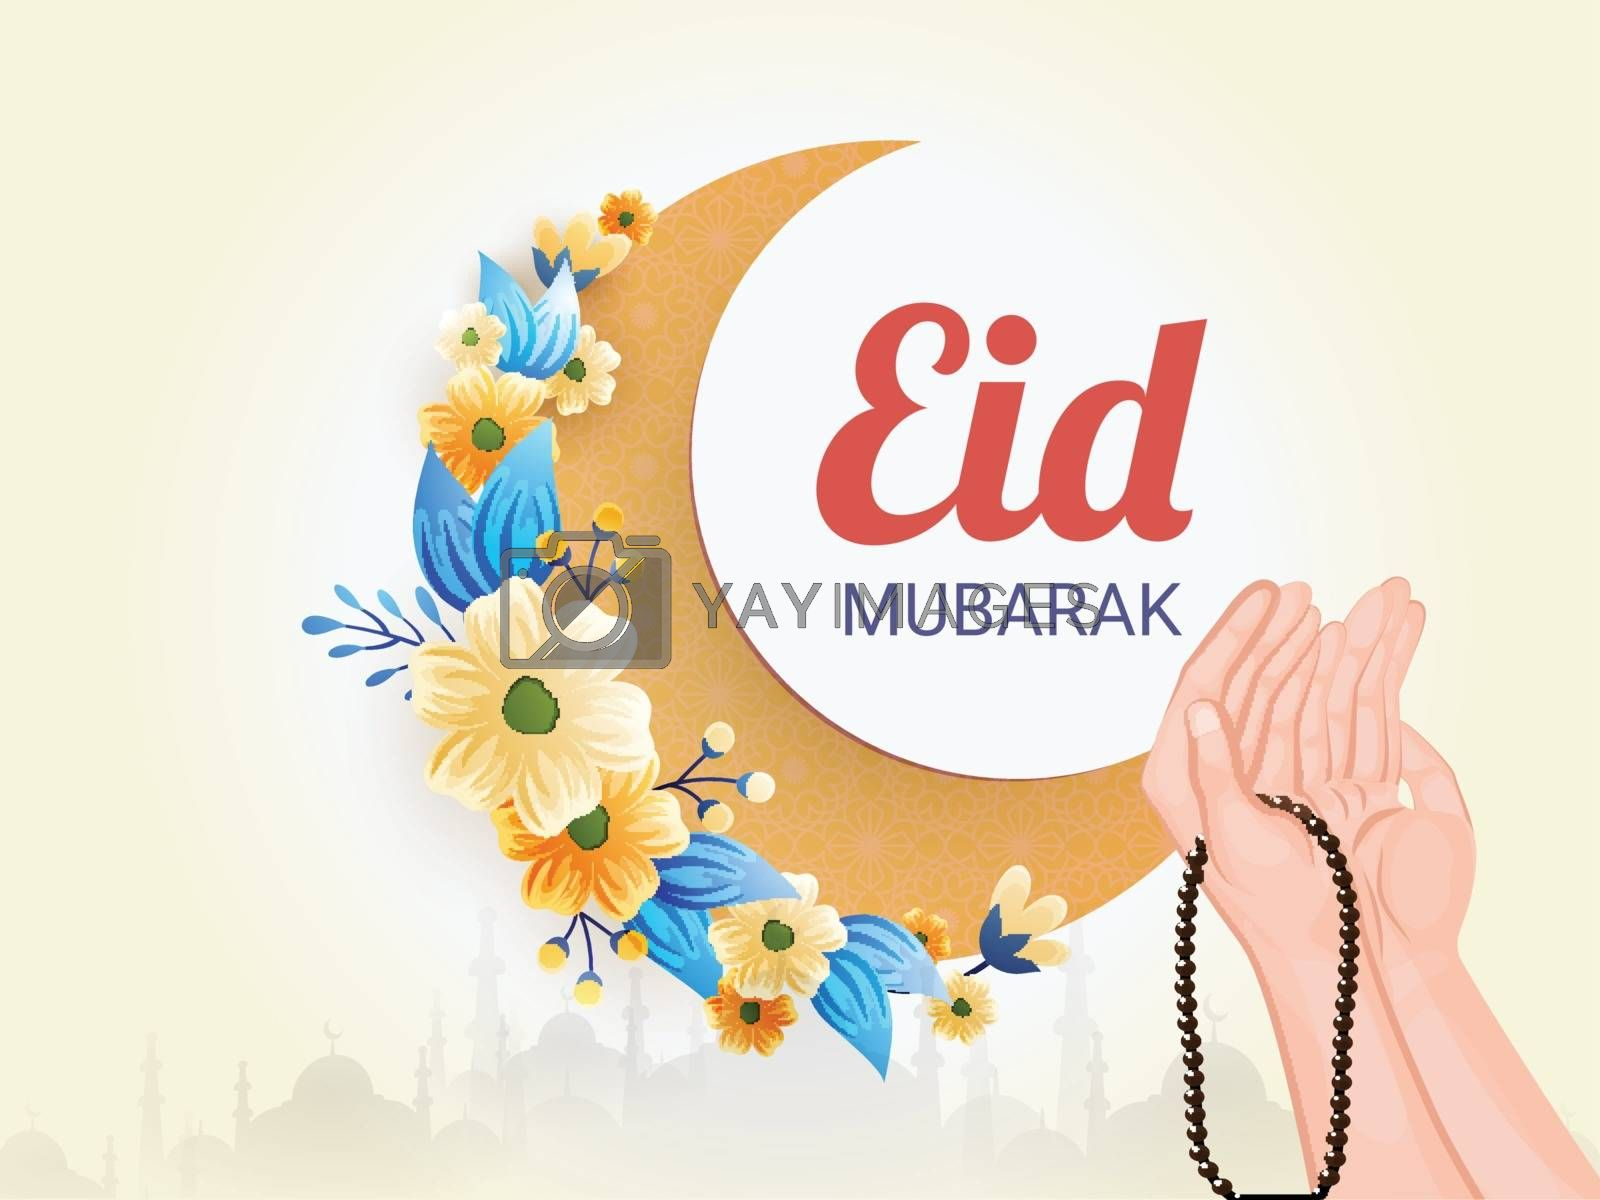 Eid Mubarak festival celebration poster or banner design with il by aispl